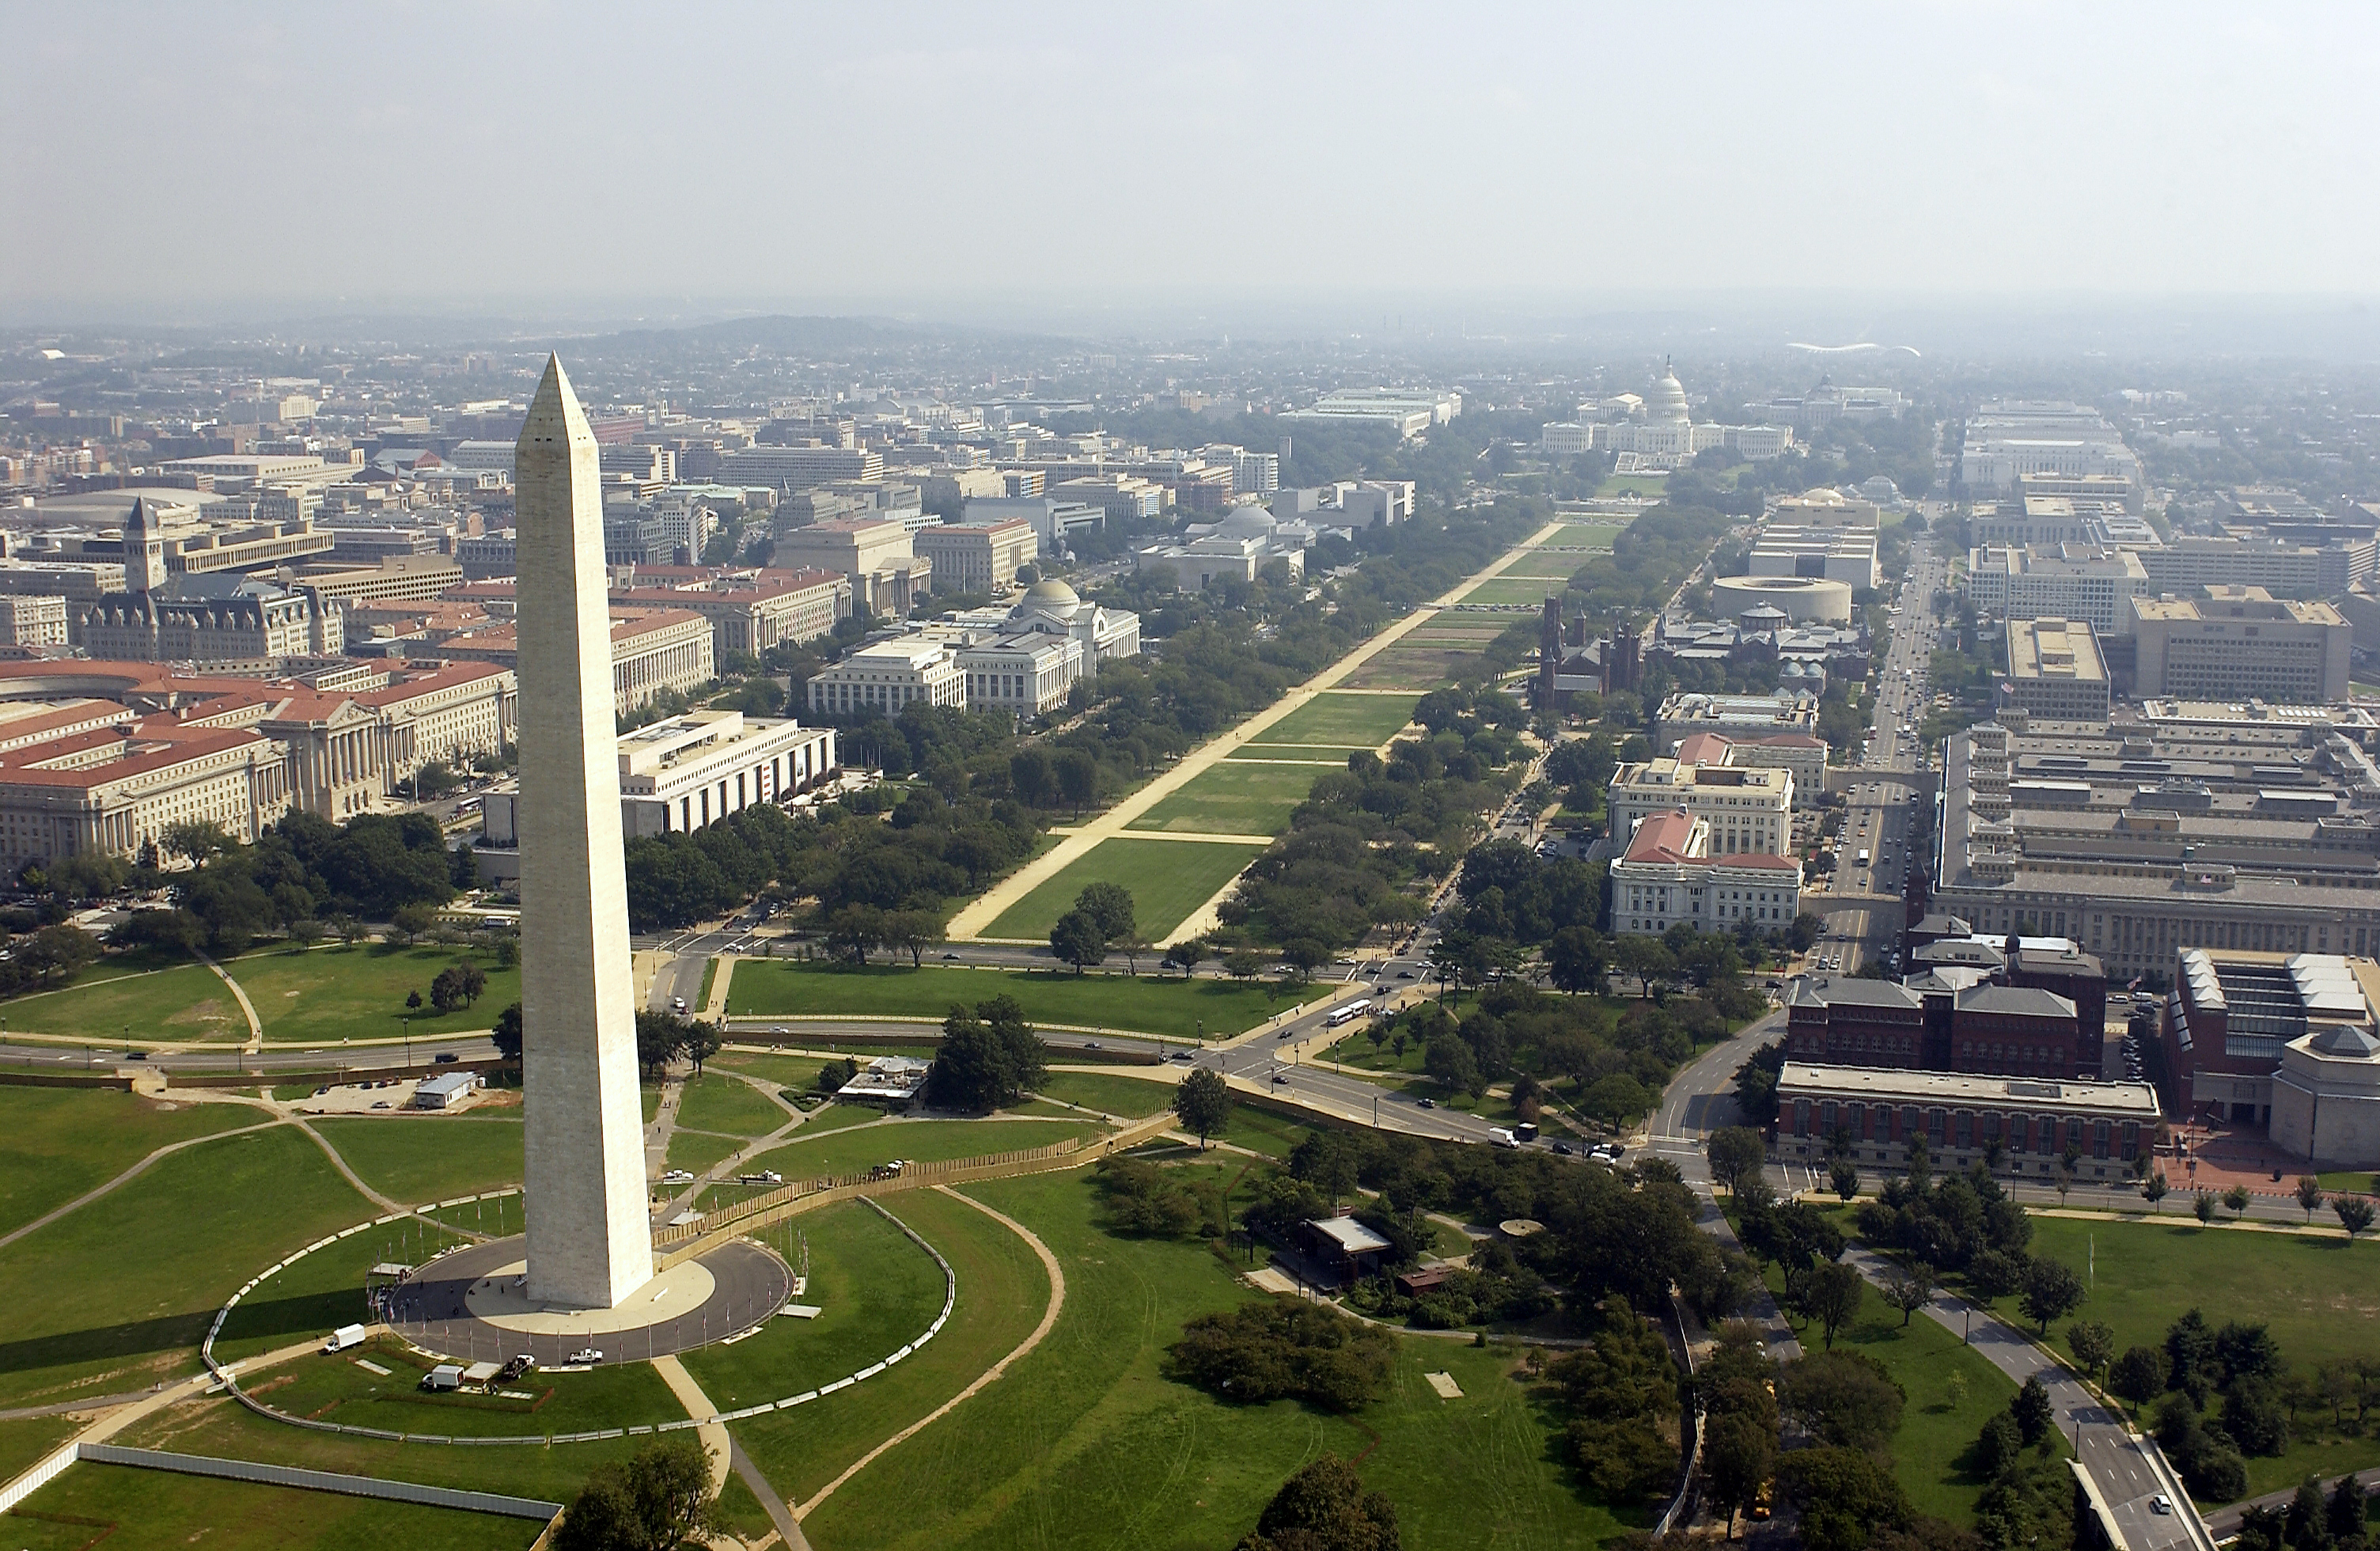 Aerial photo of the Washington Memorial with the Capitol in the background in Washington D.C. on September 26, 2003. (Photo by Andy Dunaway/USAF via Getty Images)